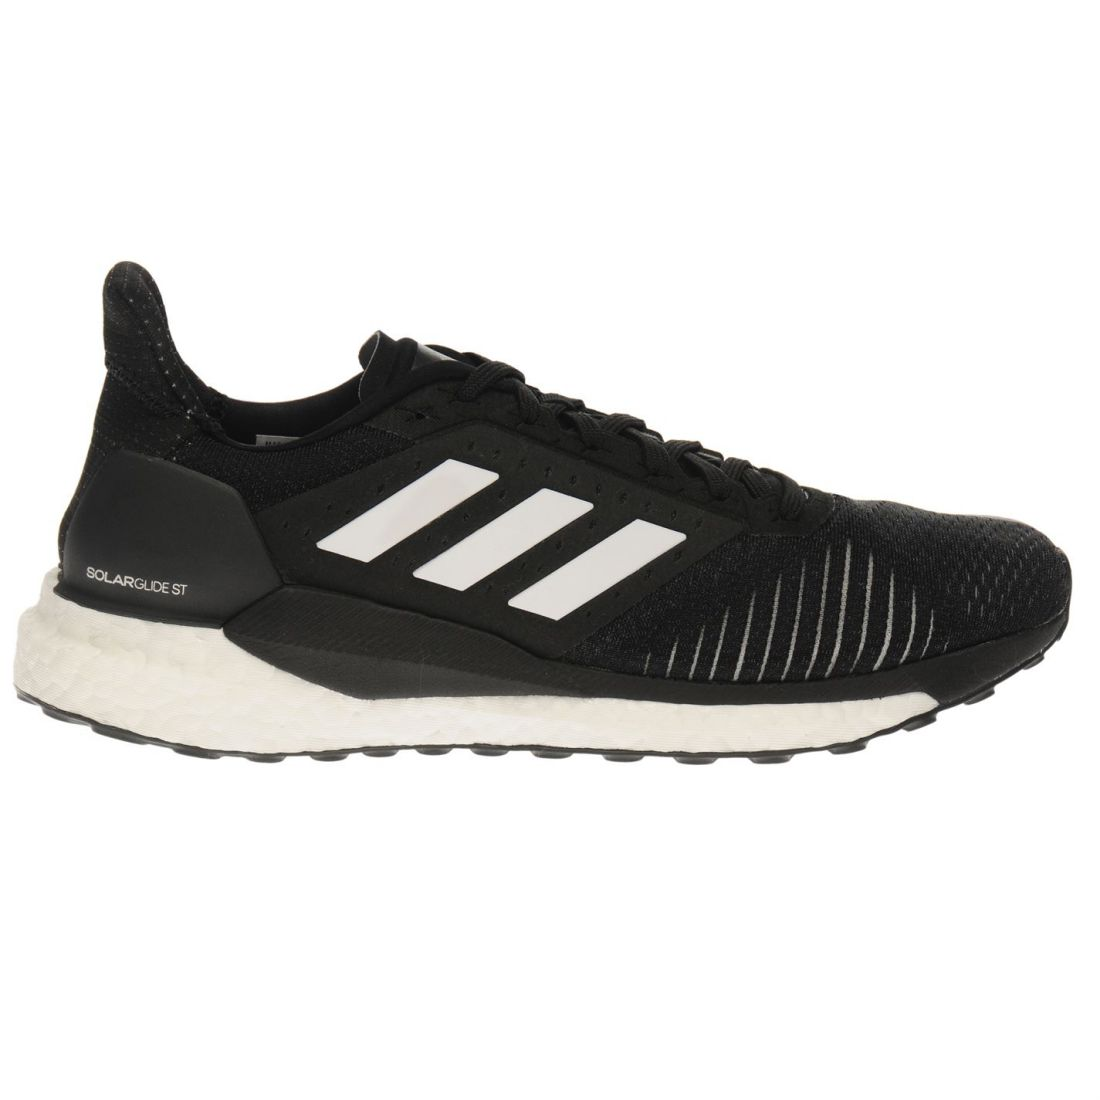 Image is loading adidas-SolarGlide-ST-Running-Shoes-Mens-Gents-Road- 90f6b545a